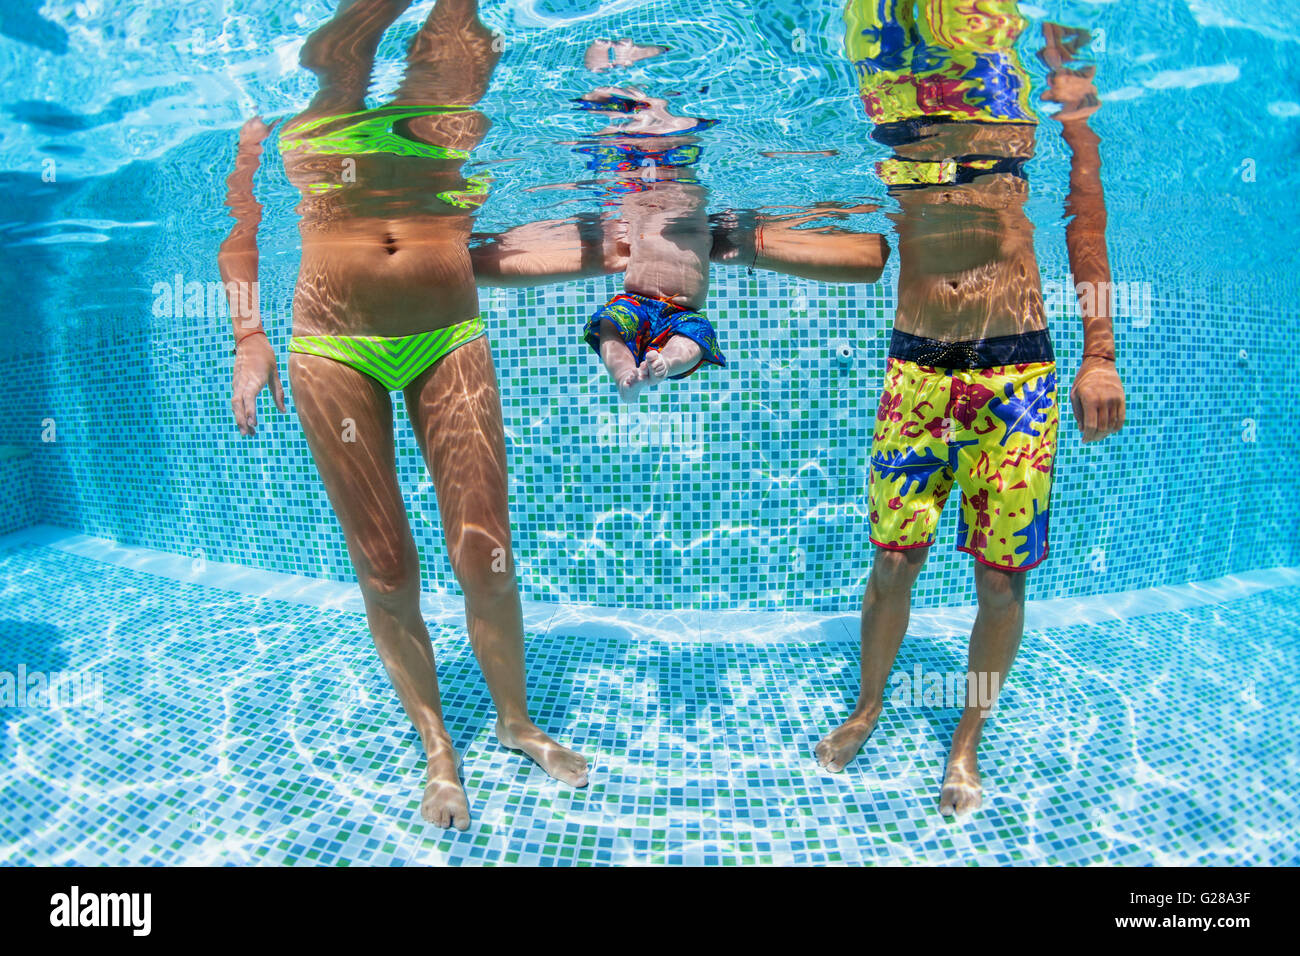 Happy swimming family - father and mother with baby swim and dive underwater with fun in pool. Healthy lifestyle, - Stock Image